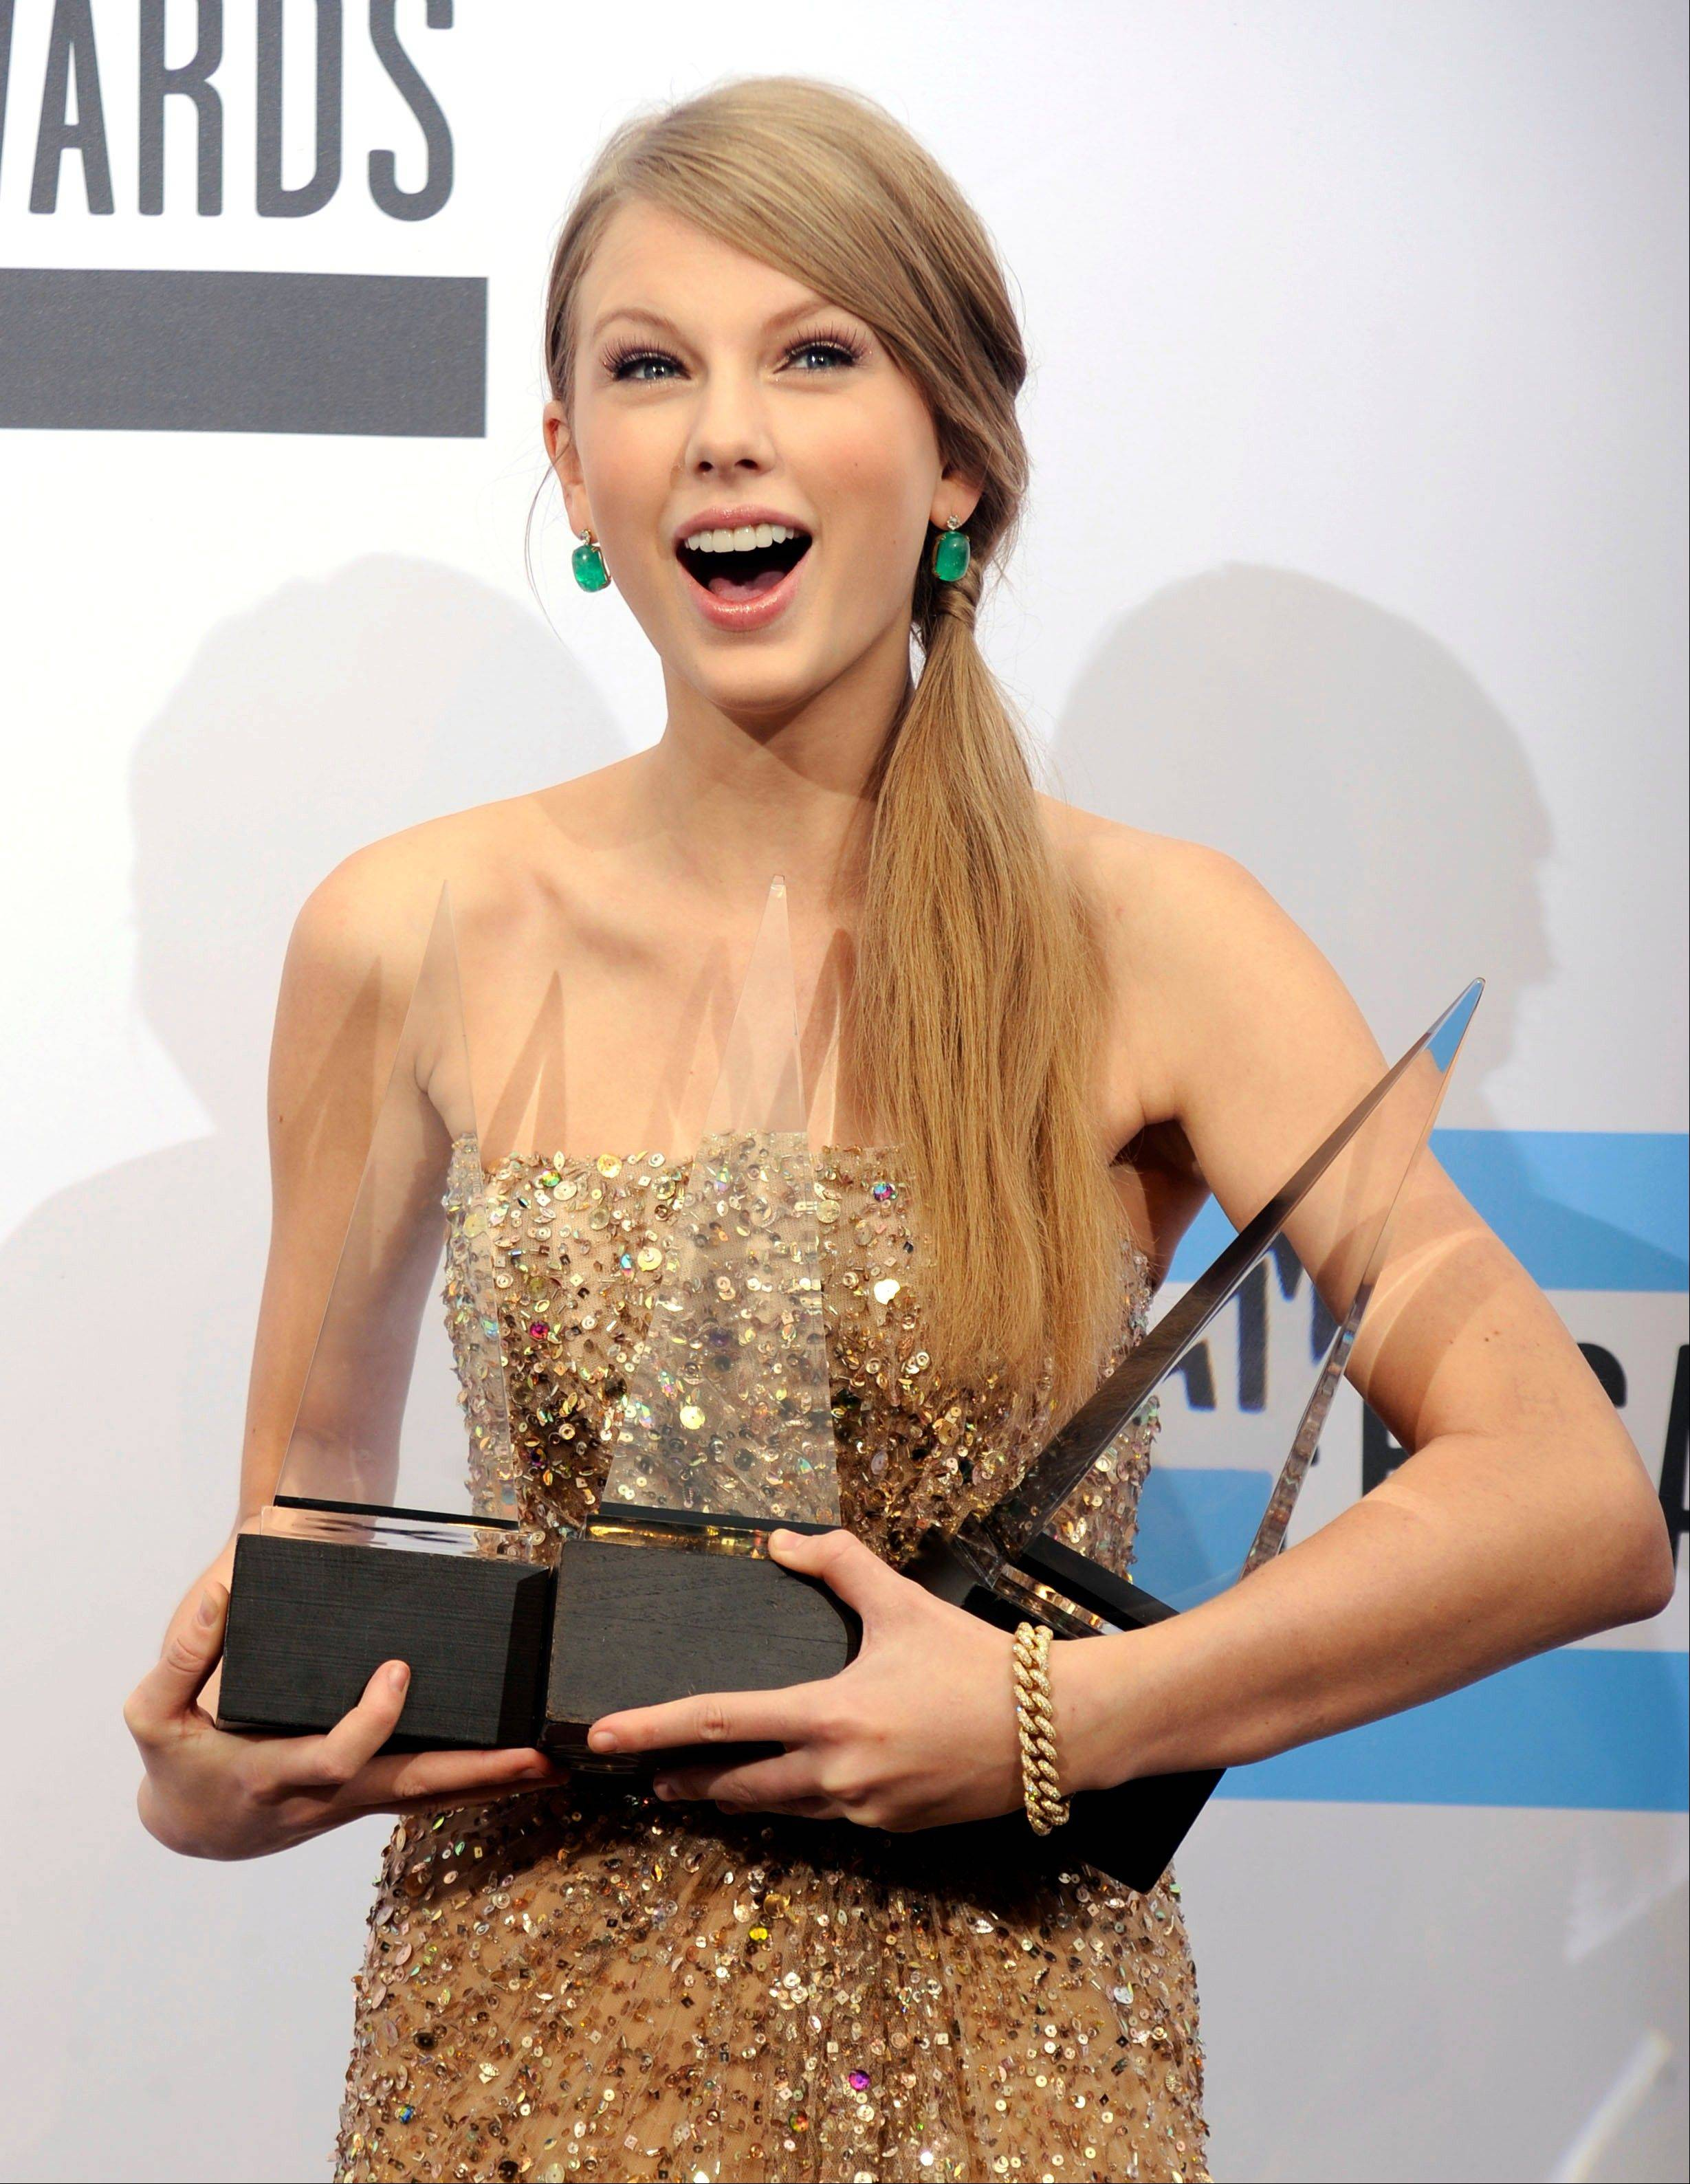 Taylor Swift poses backstage with the awards for country favorite female artist, country favorite album, and artist of the year at the 39th Annual American Music Awards on Sunday, Nov. 20, 2011 in Los Angeles. (AP Photo/Chris Pizzello)